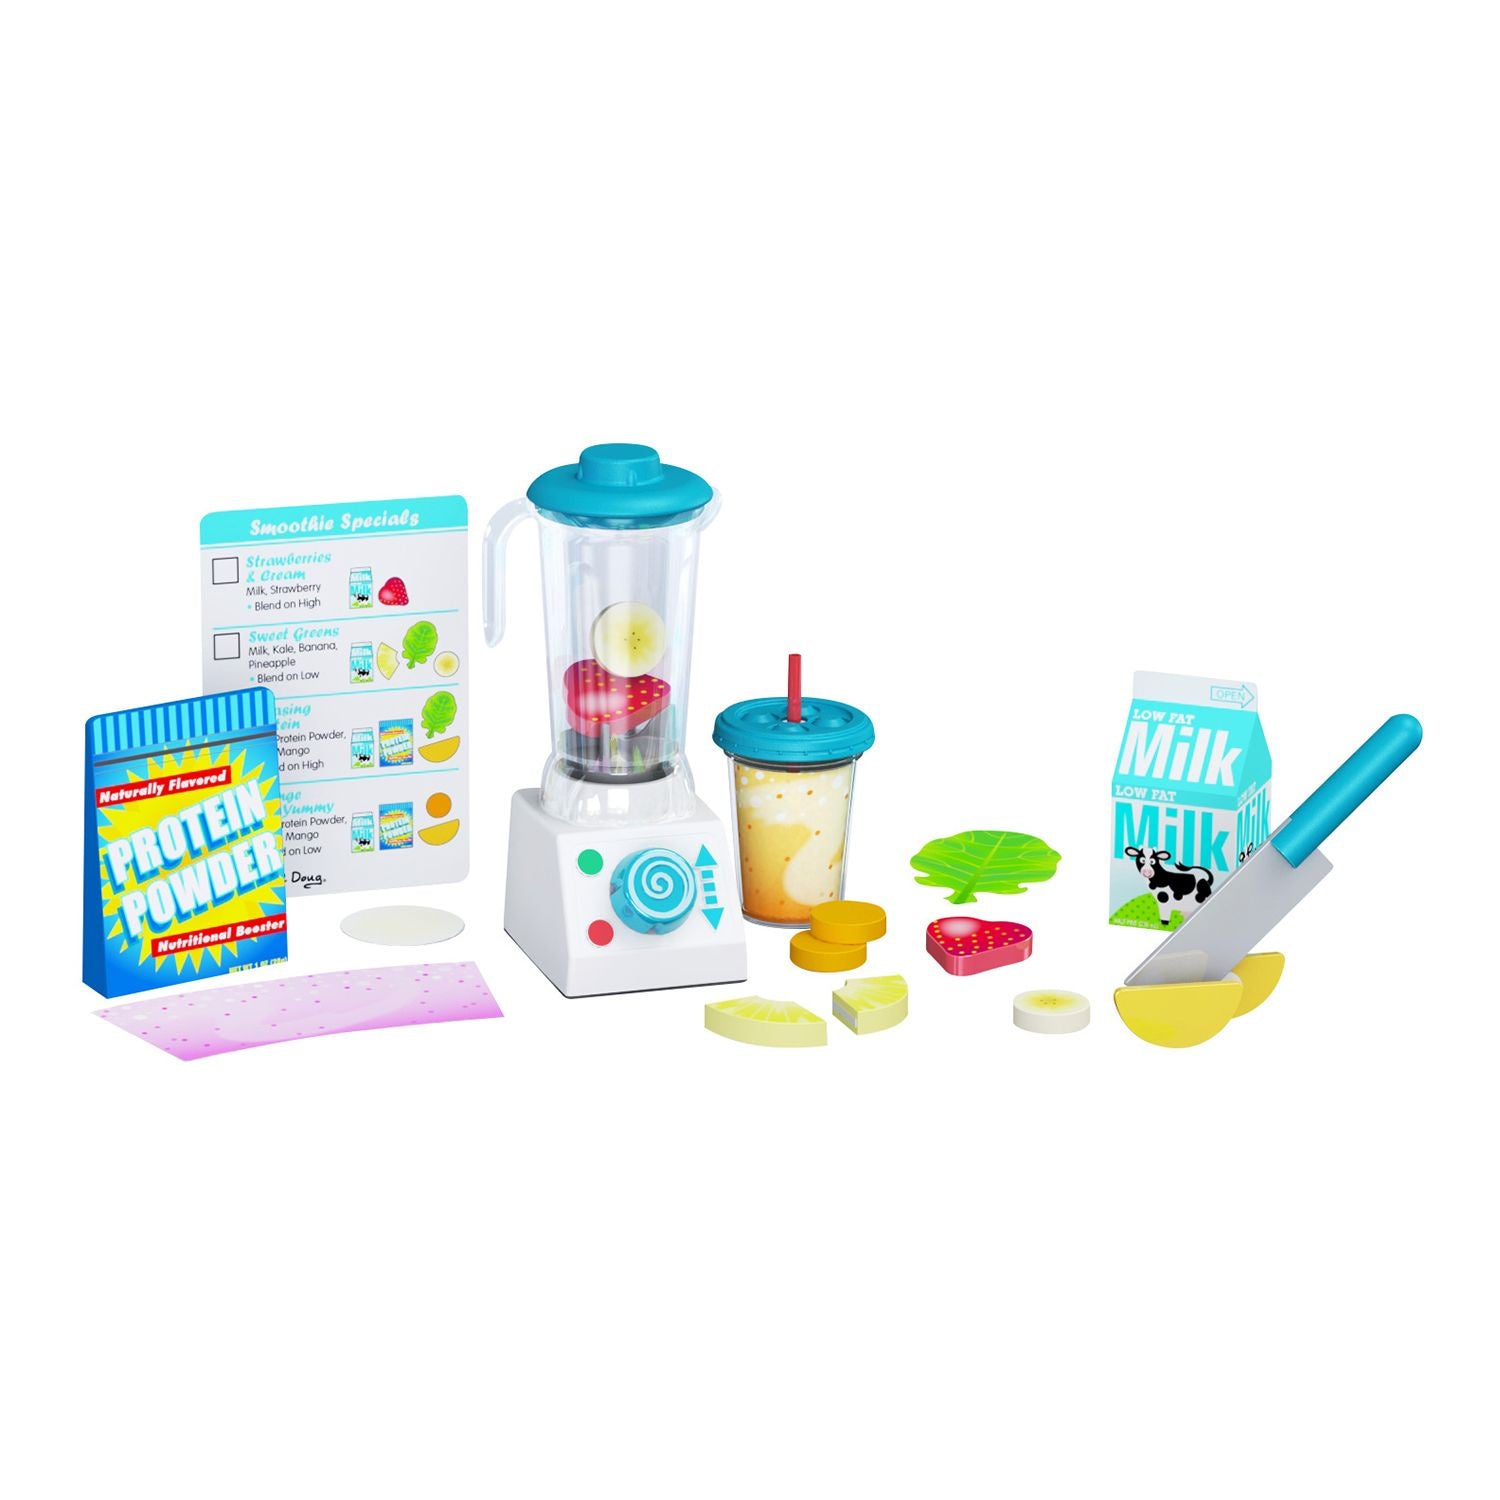 Melissa & Doug Smoothie Maker